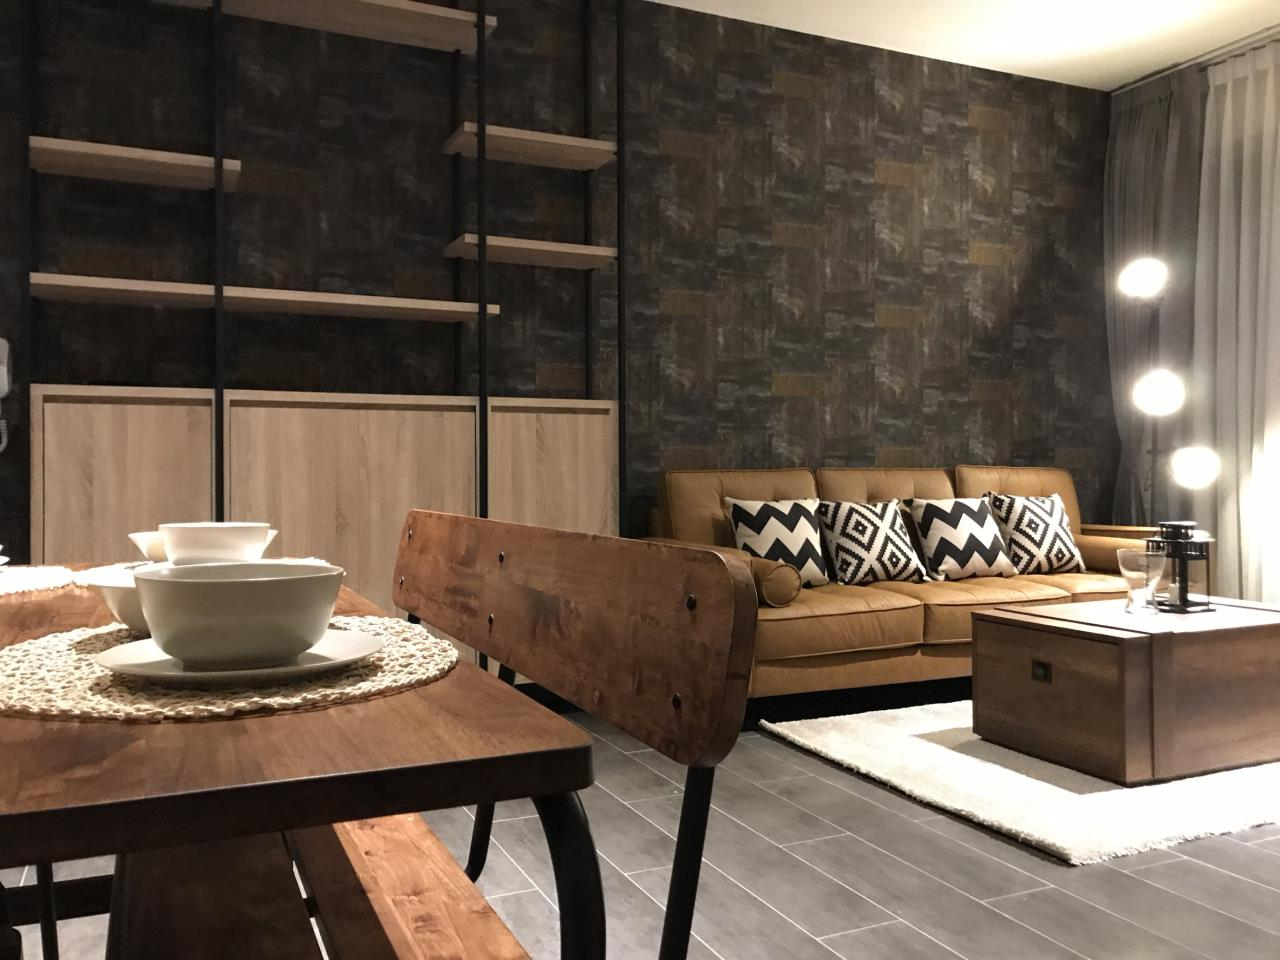 Quality Life Property Agency's S A L E & R E N T !! [ THE LOFTS EKKAMAI ] 2 BR 1 BA 61 Sq.m. 8th floor NICE DECORATION! 3